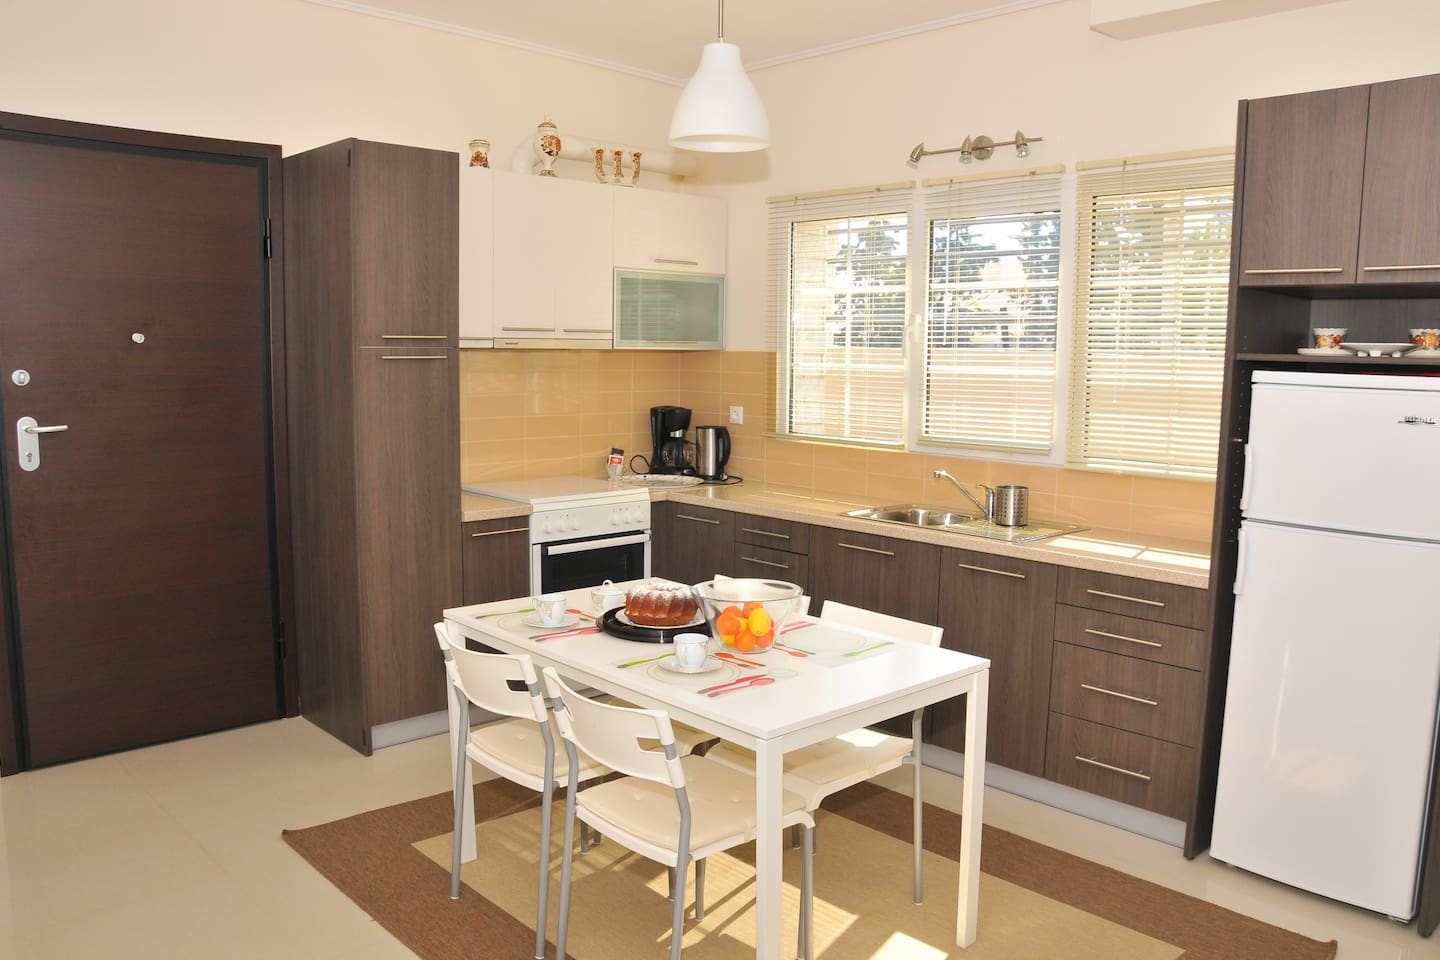 Entrance-kitchen with view to the street